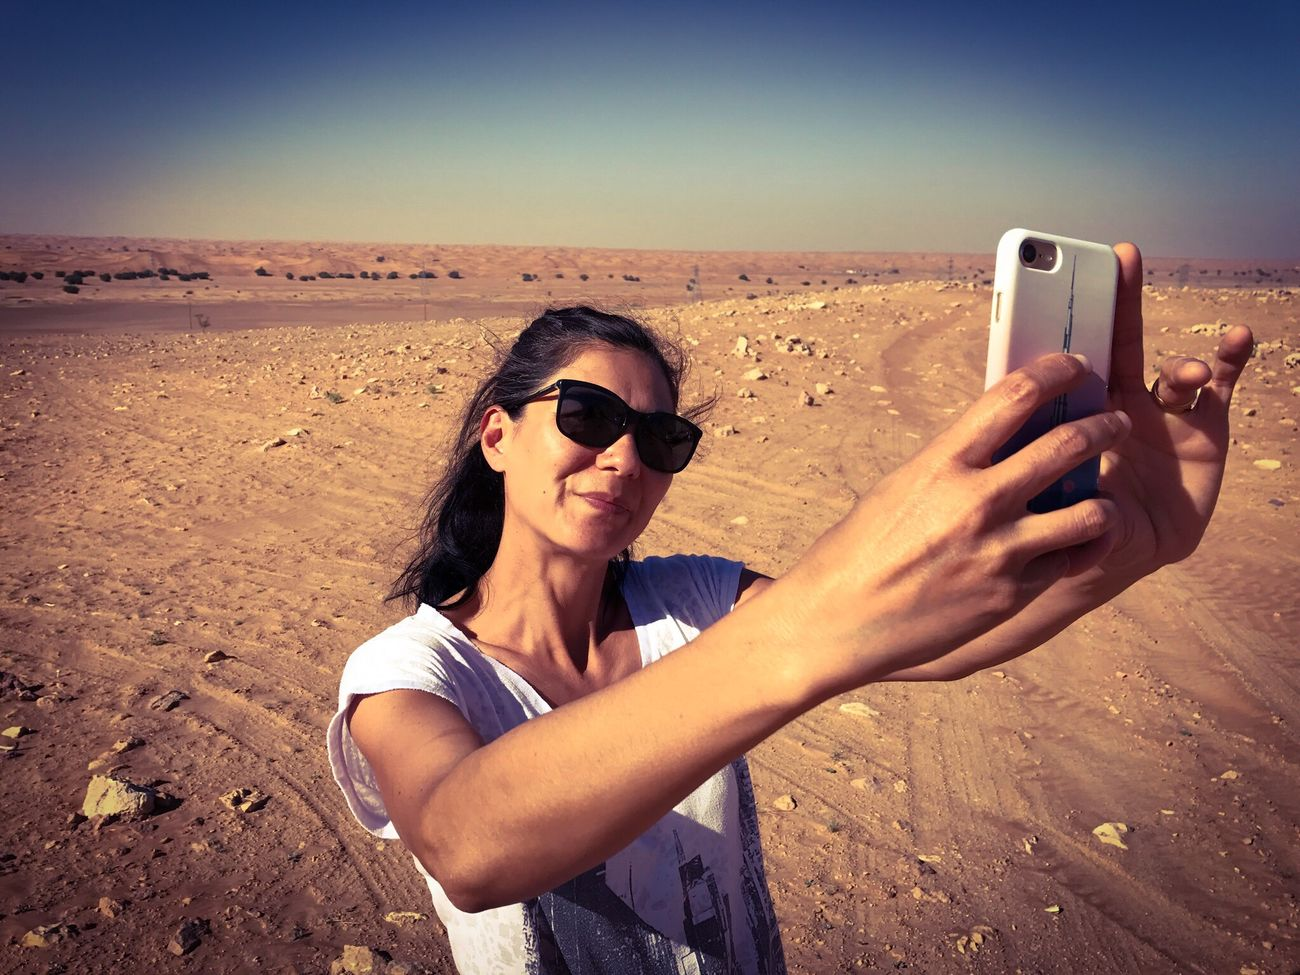 Woman taking a selfie in the desert Photography Themes Photo Messaging Smart Phone Portable Information Device Selfie Wireless Technology Photographing Sunglasses Technology Communication Mobile Phone Holding One Person Desert Safari IPhone Sand Outdoors Young Adult Real People Day People